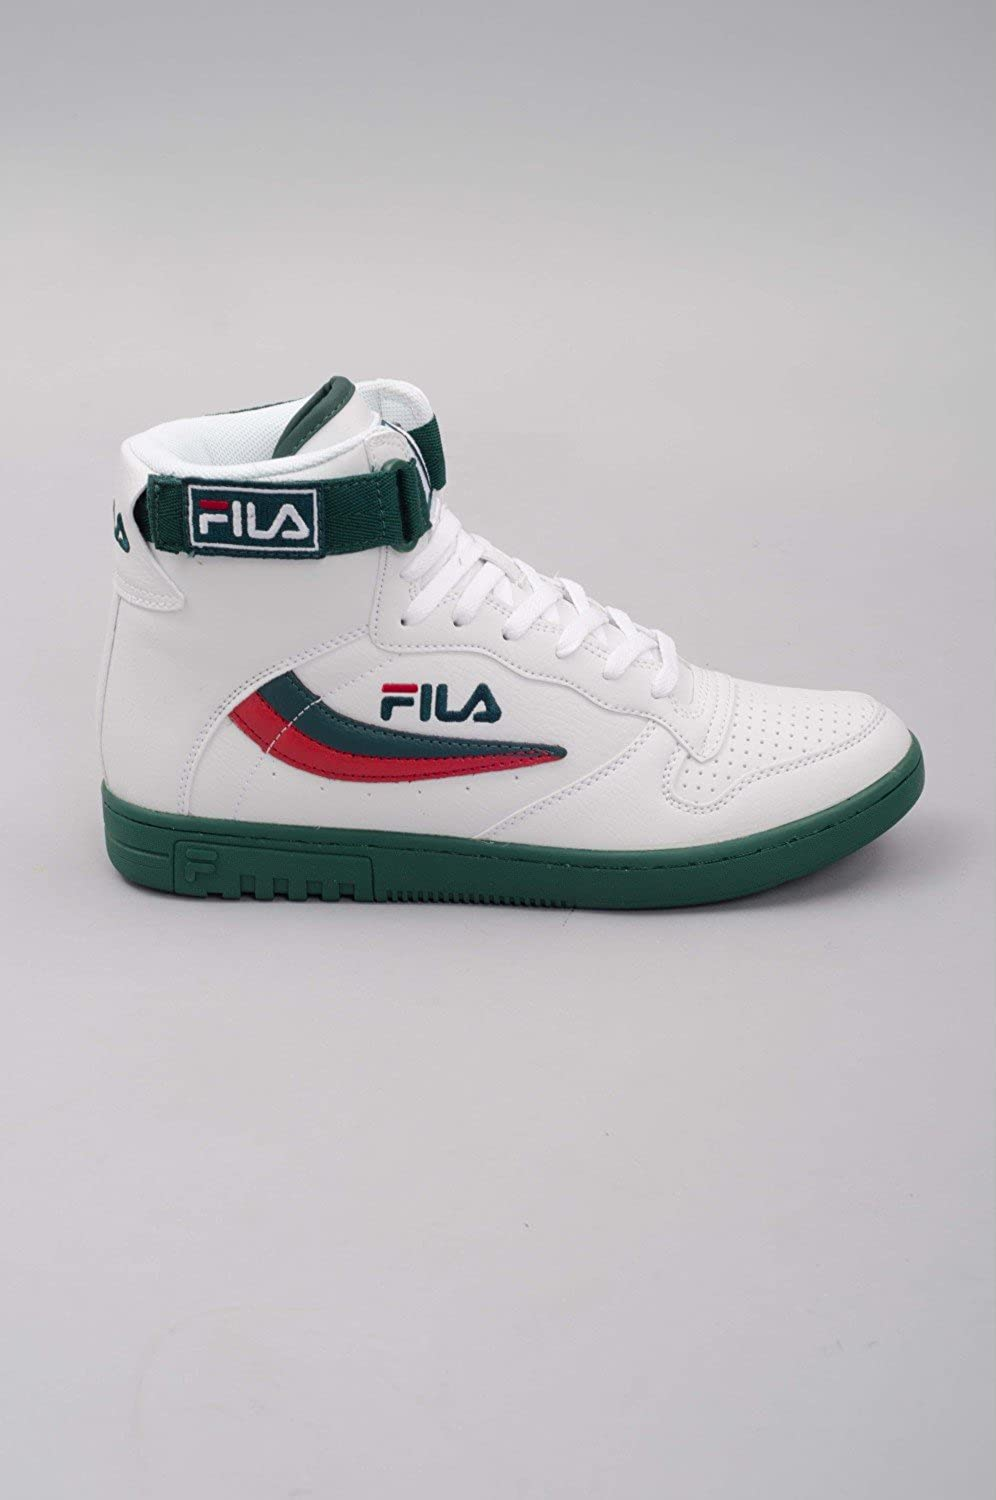 Fx 46 Fila Roller White Quad Taille Chaussure 100 Bright Mid qqw6Bv